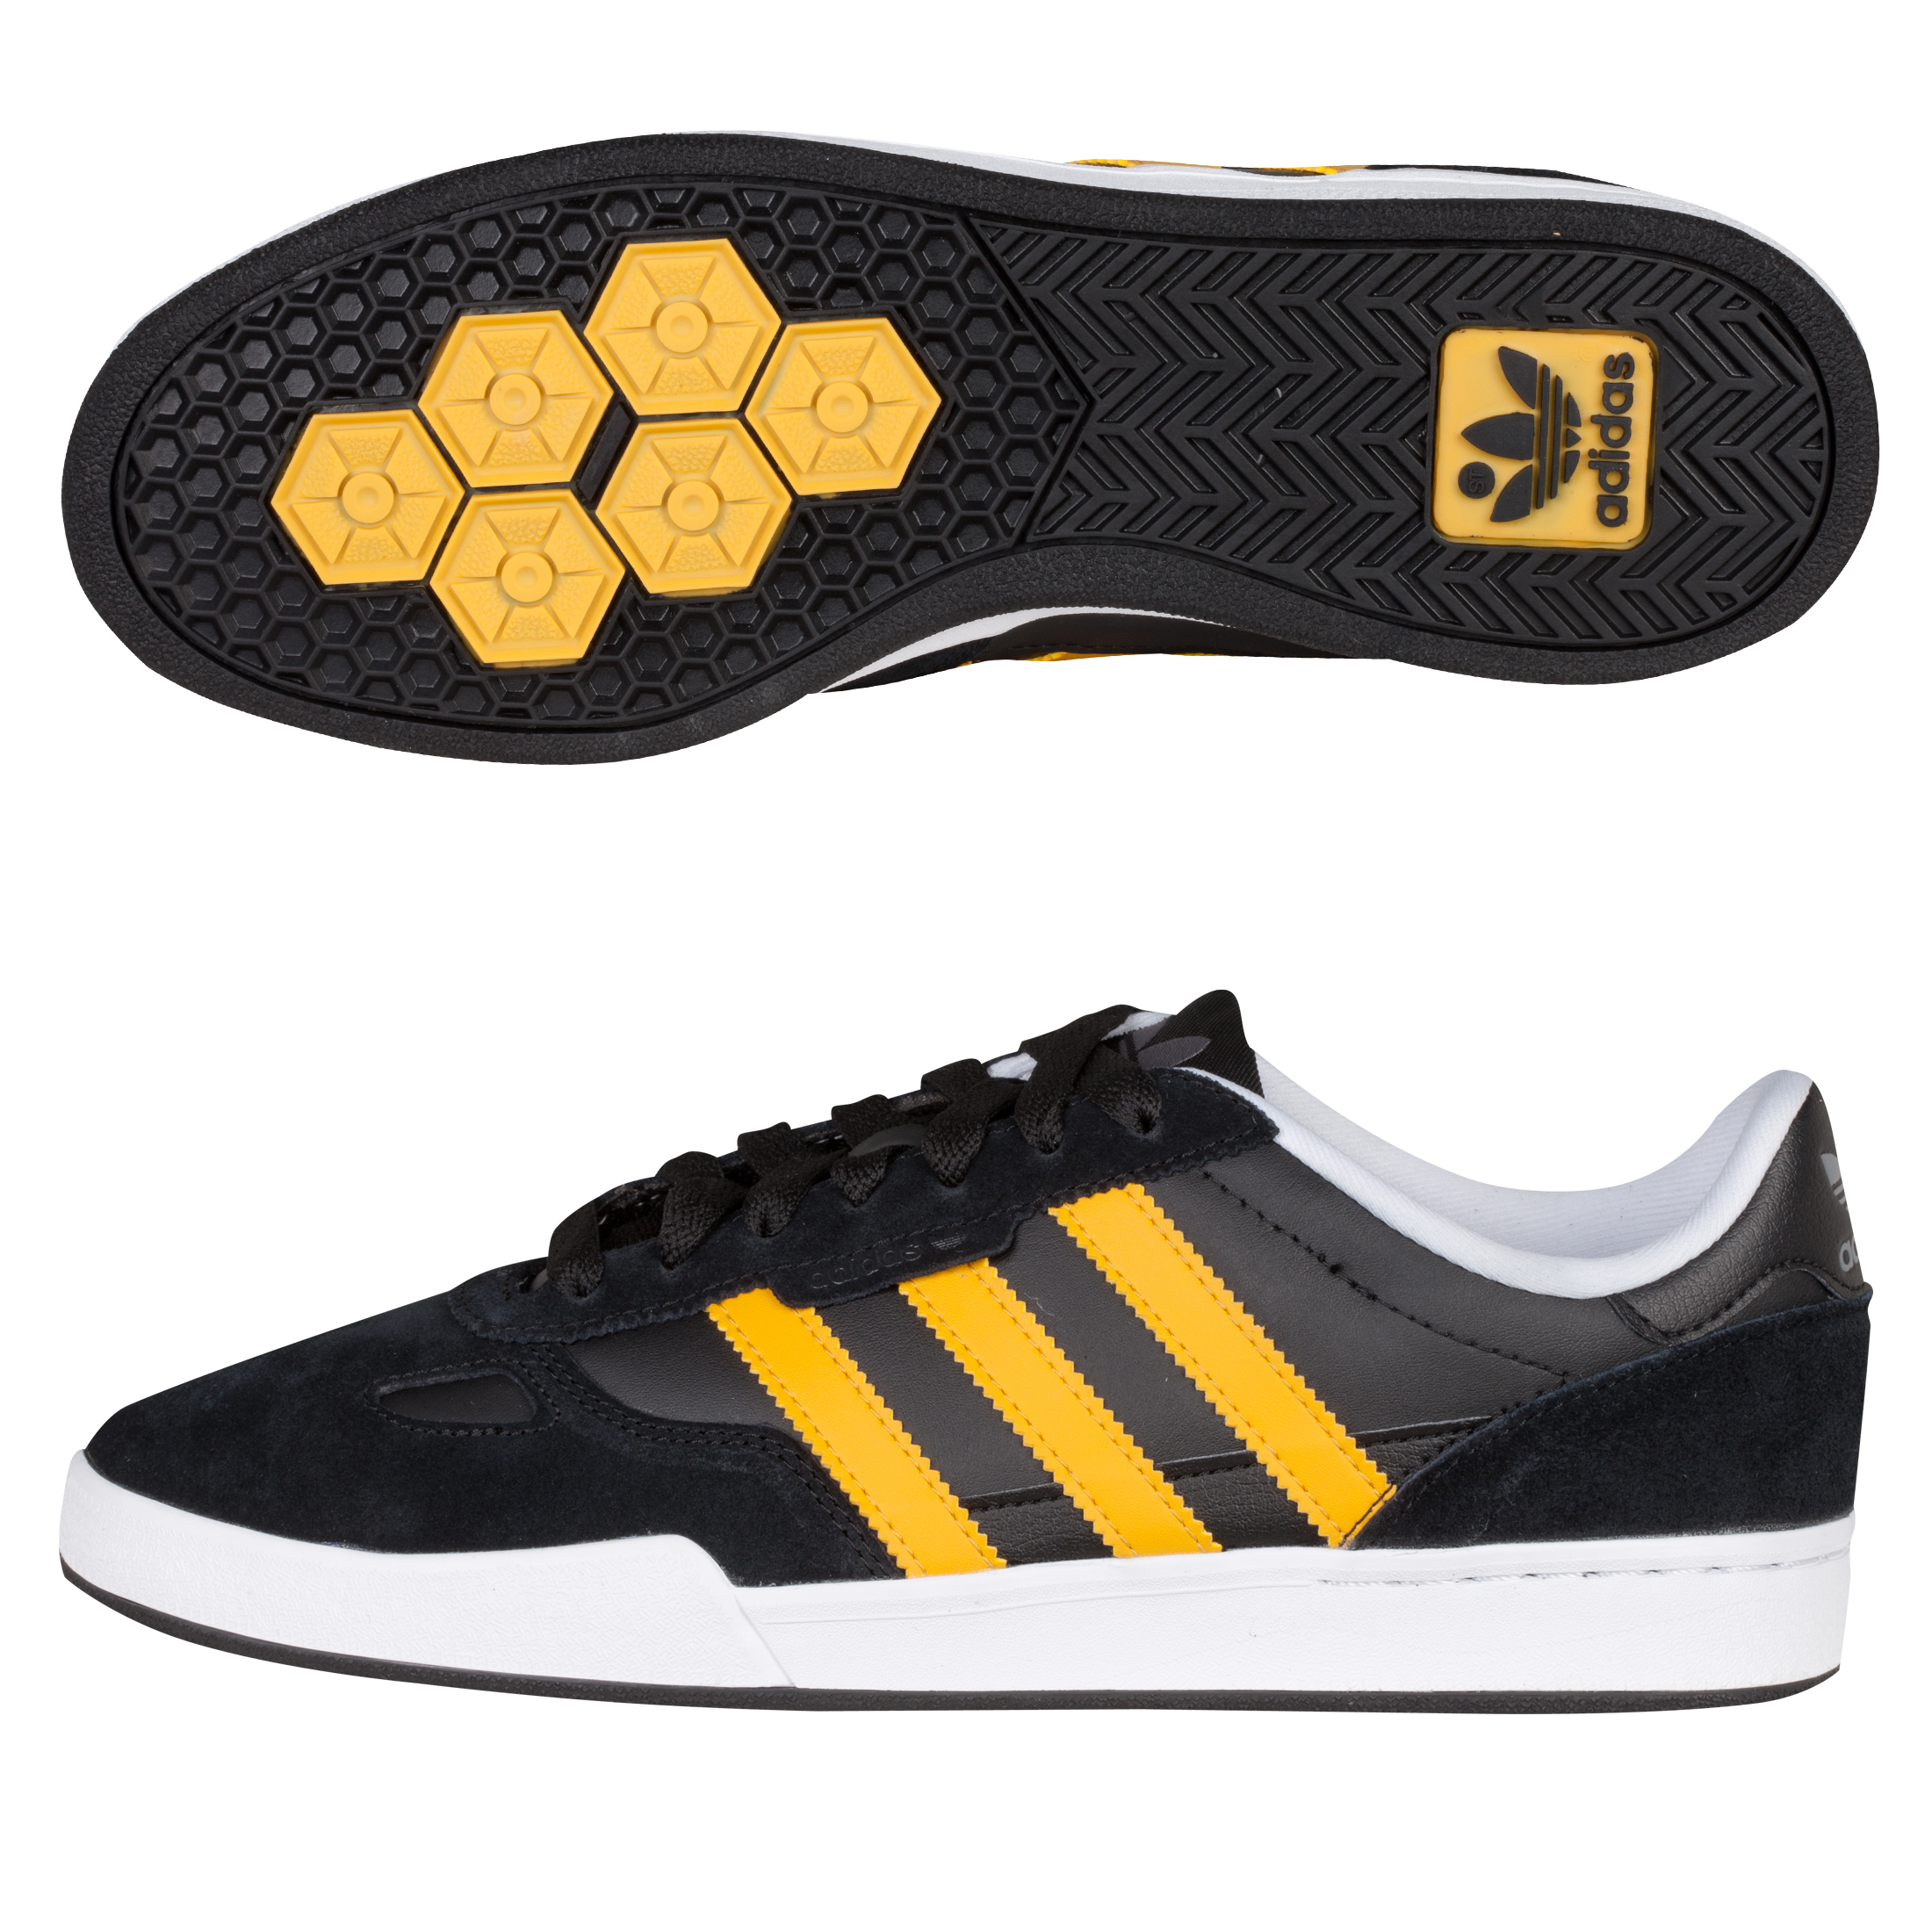 Adidas Originals Ciero Update Trainers - Black/Craft Gold/White